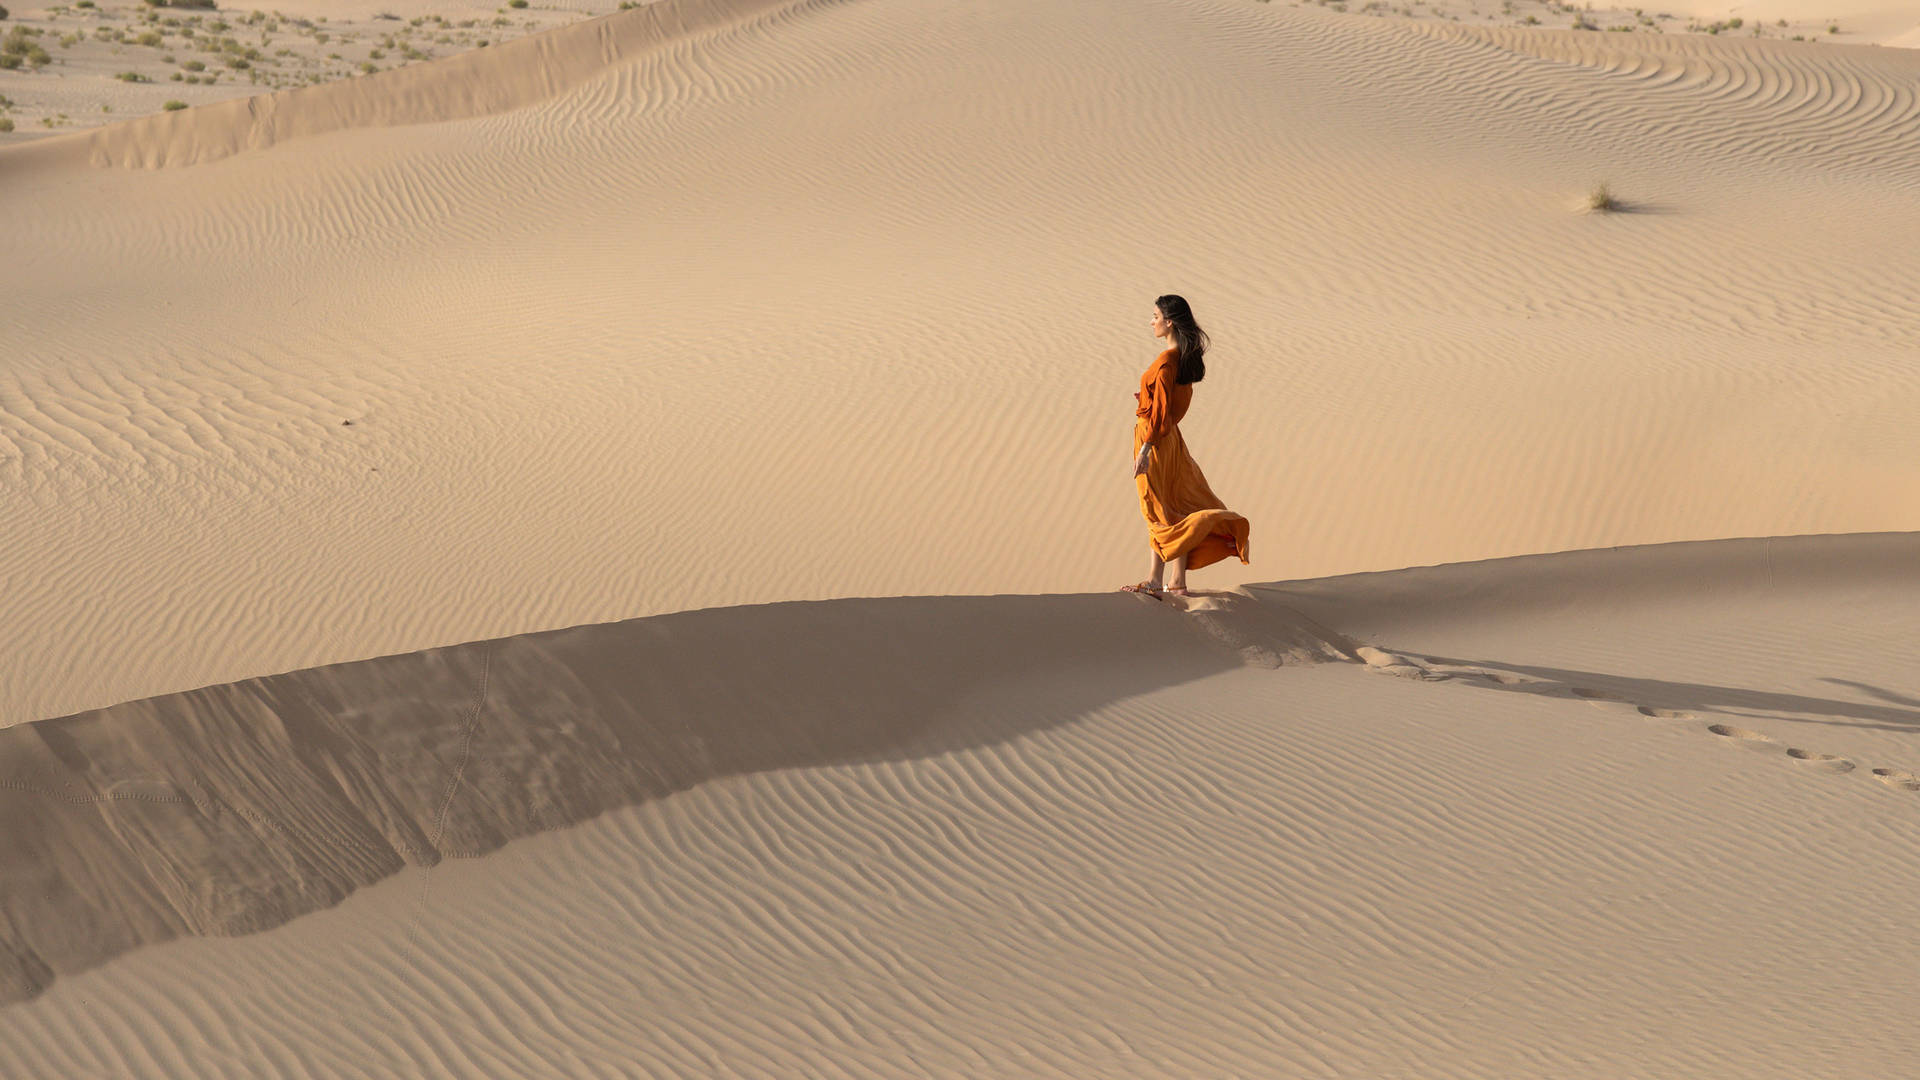 Lady on the dune